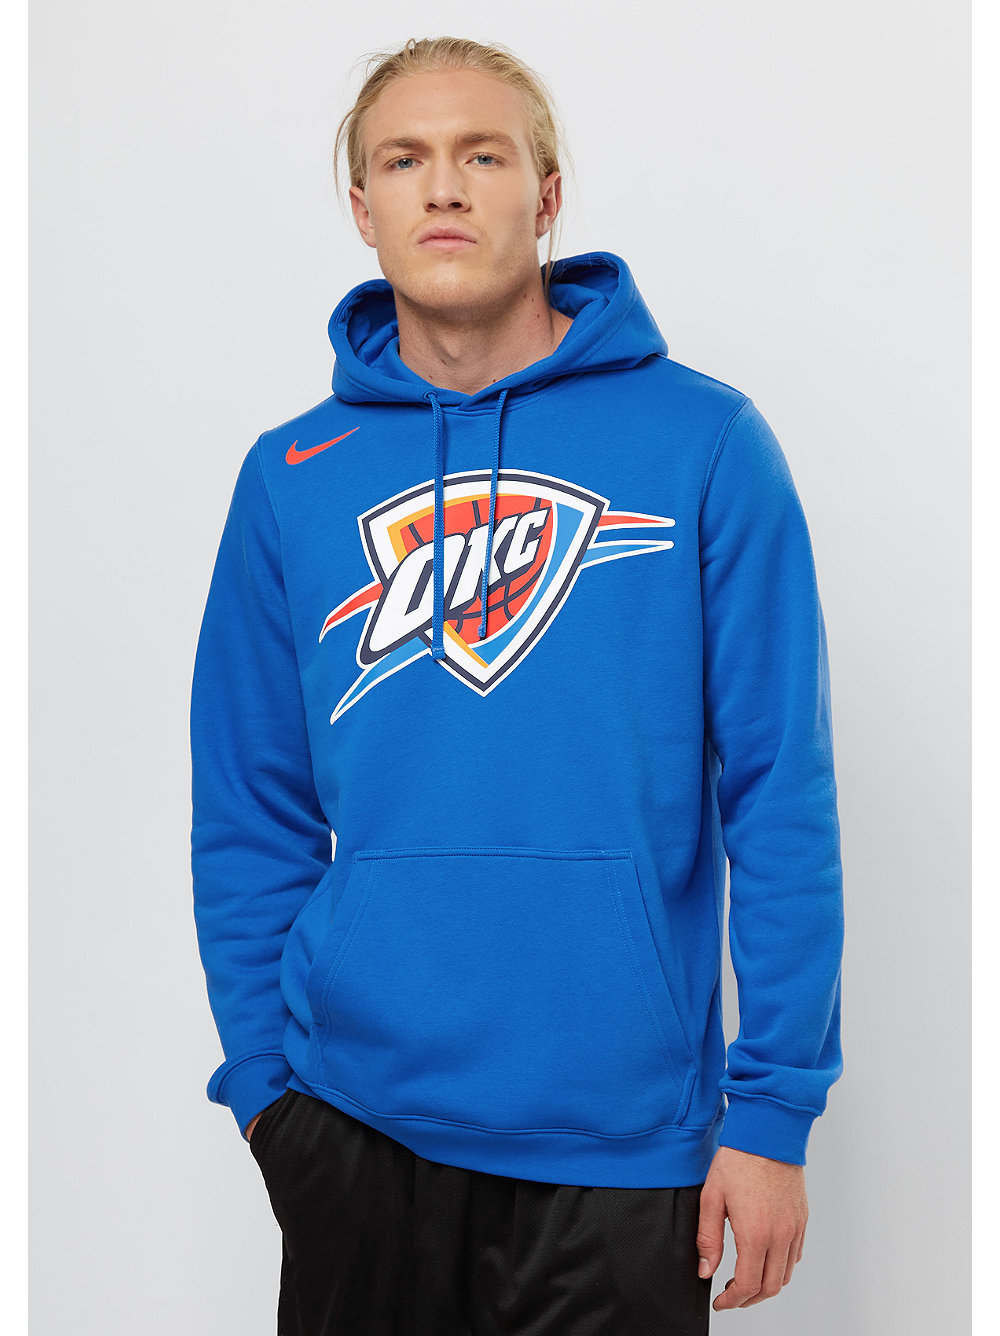 nike hoodie nba oklahoma city thunder snipes onlineshop. Black Bedroom Furniture Sets. Home Design Ideas